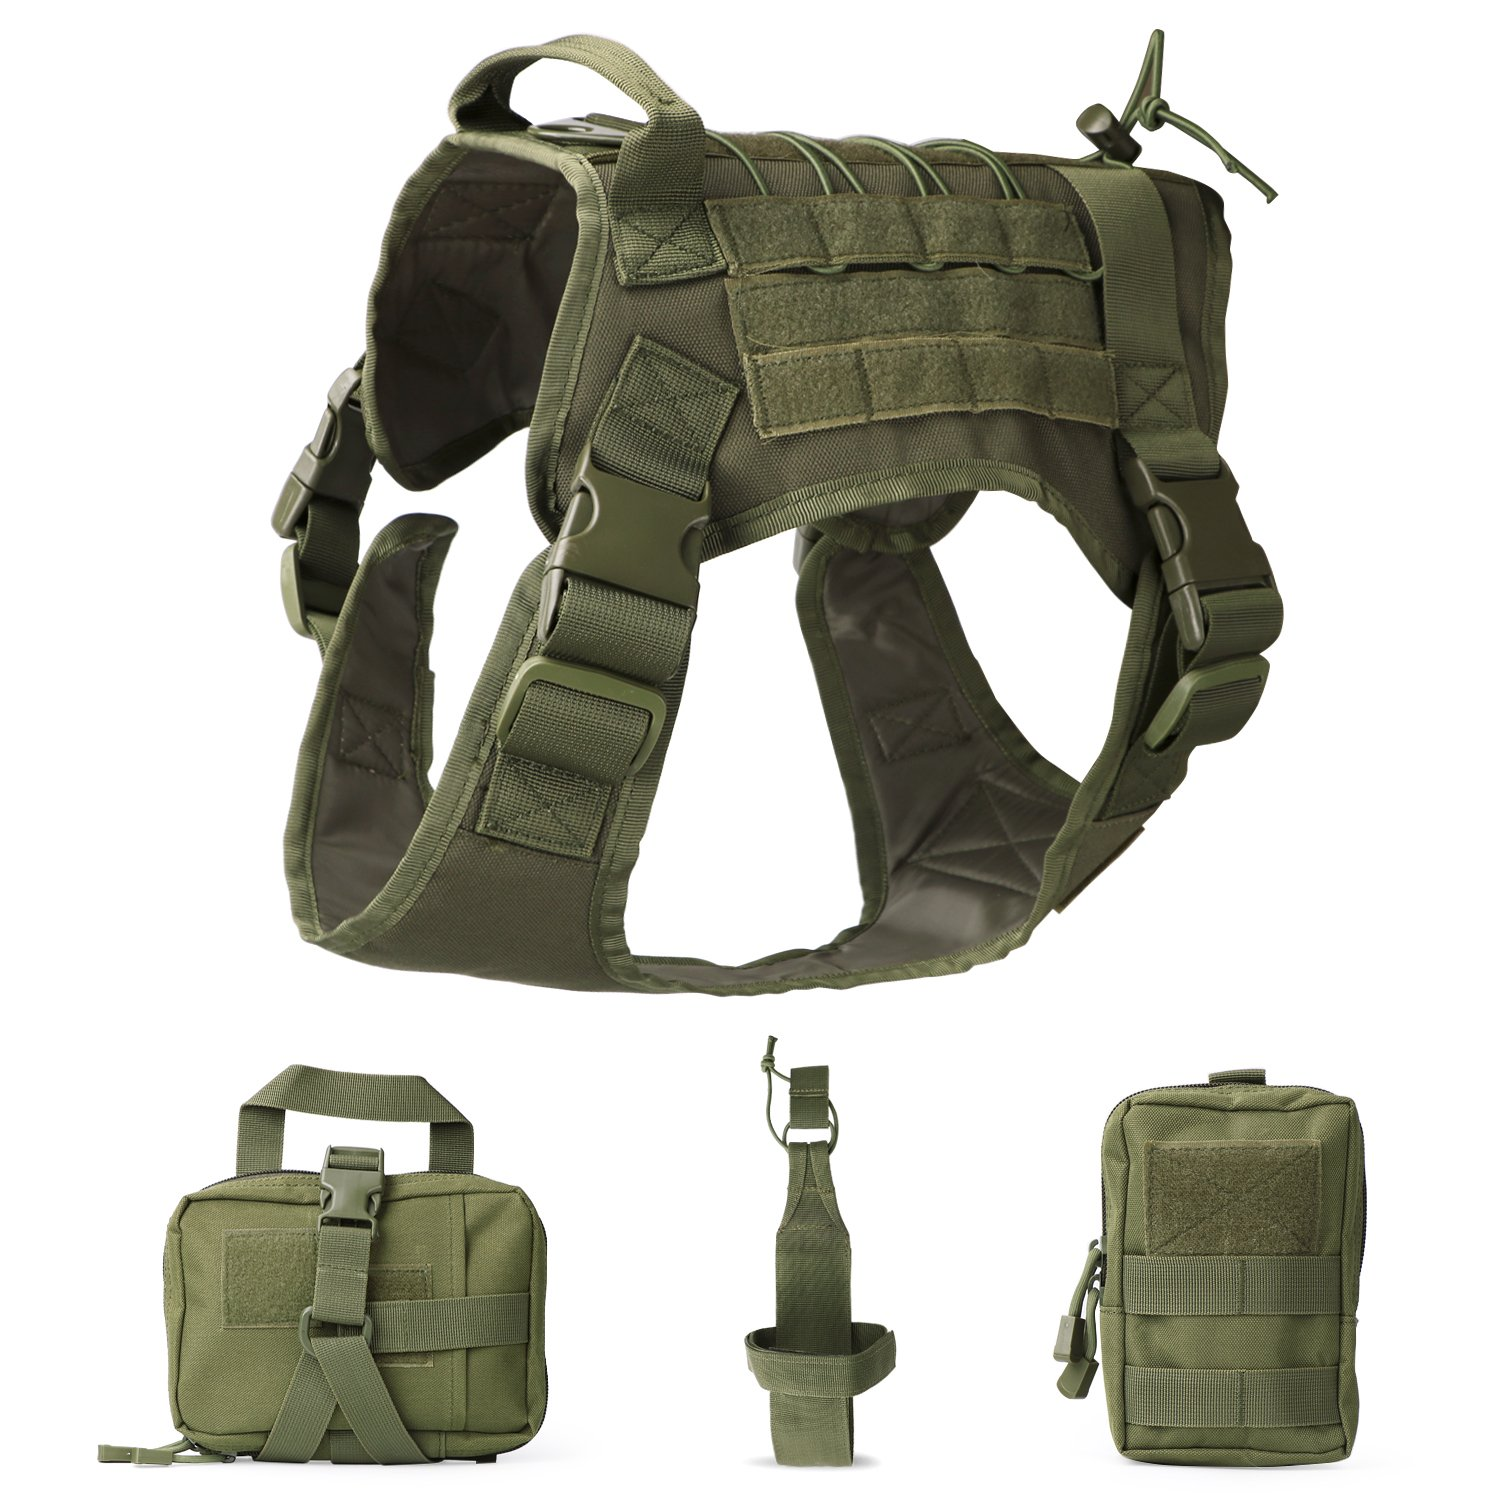 JASGOOD Tactical Dog Vest Military Harness With Detachable Molle Pouches/Patches Outdoor Training Handle Service Dog Vest JA-bag003K